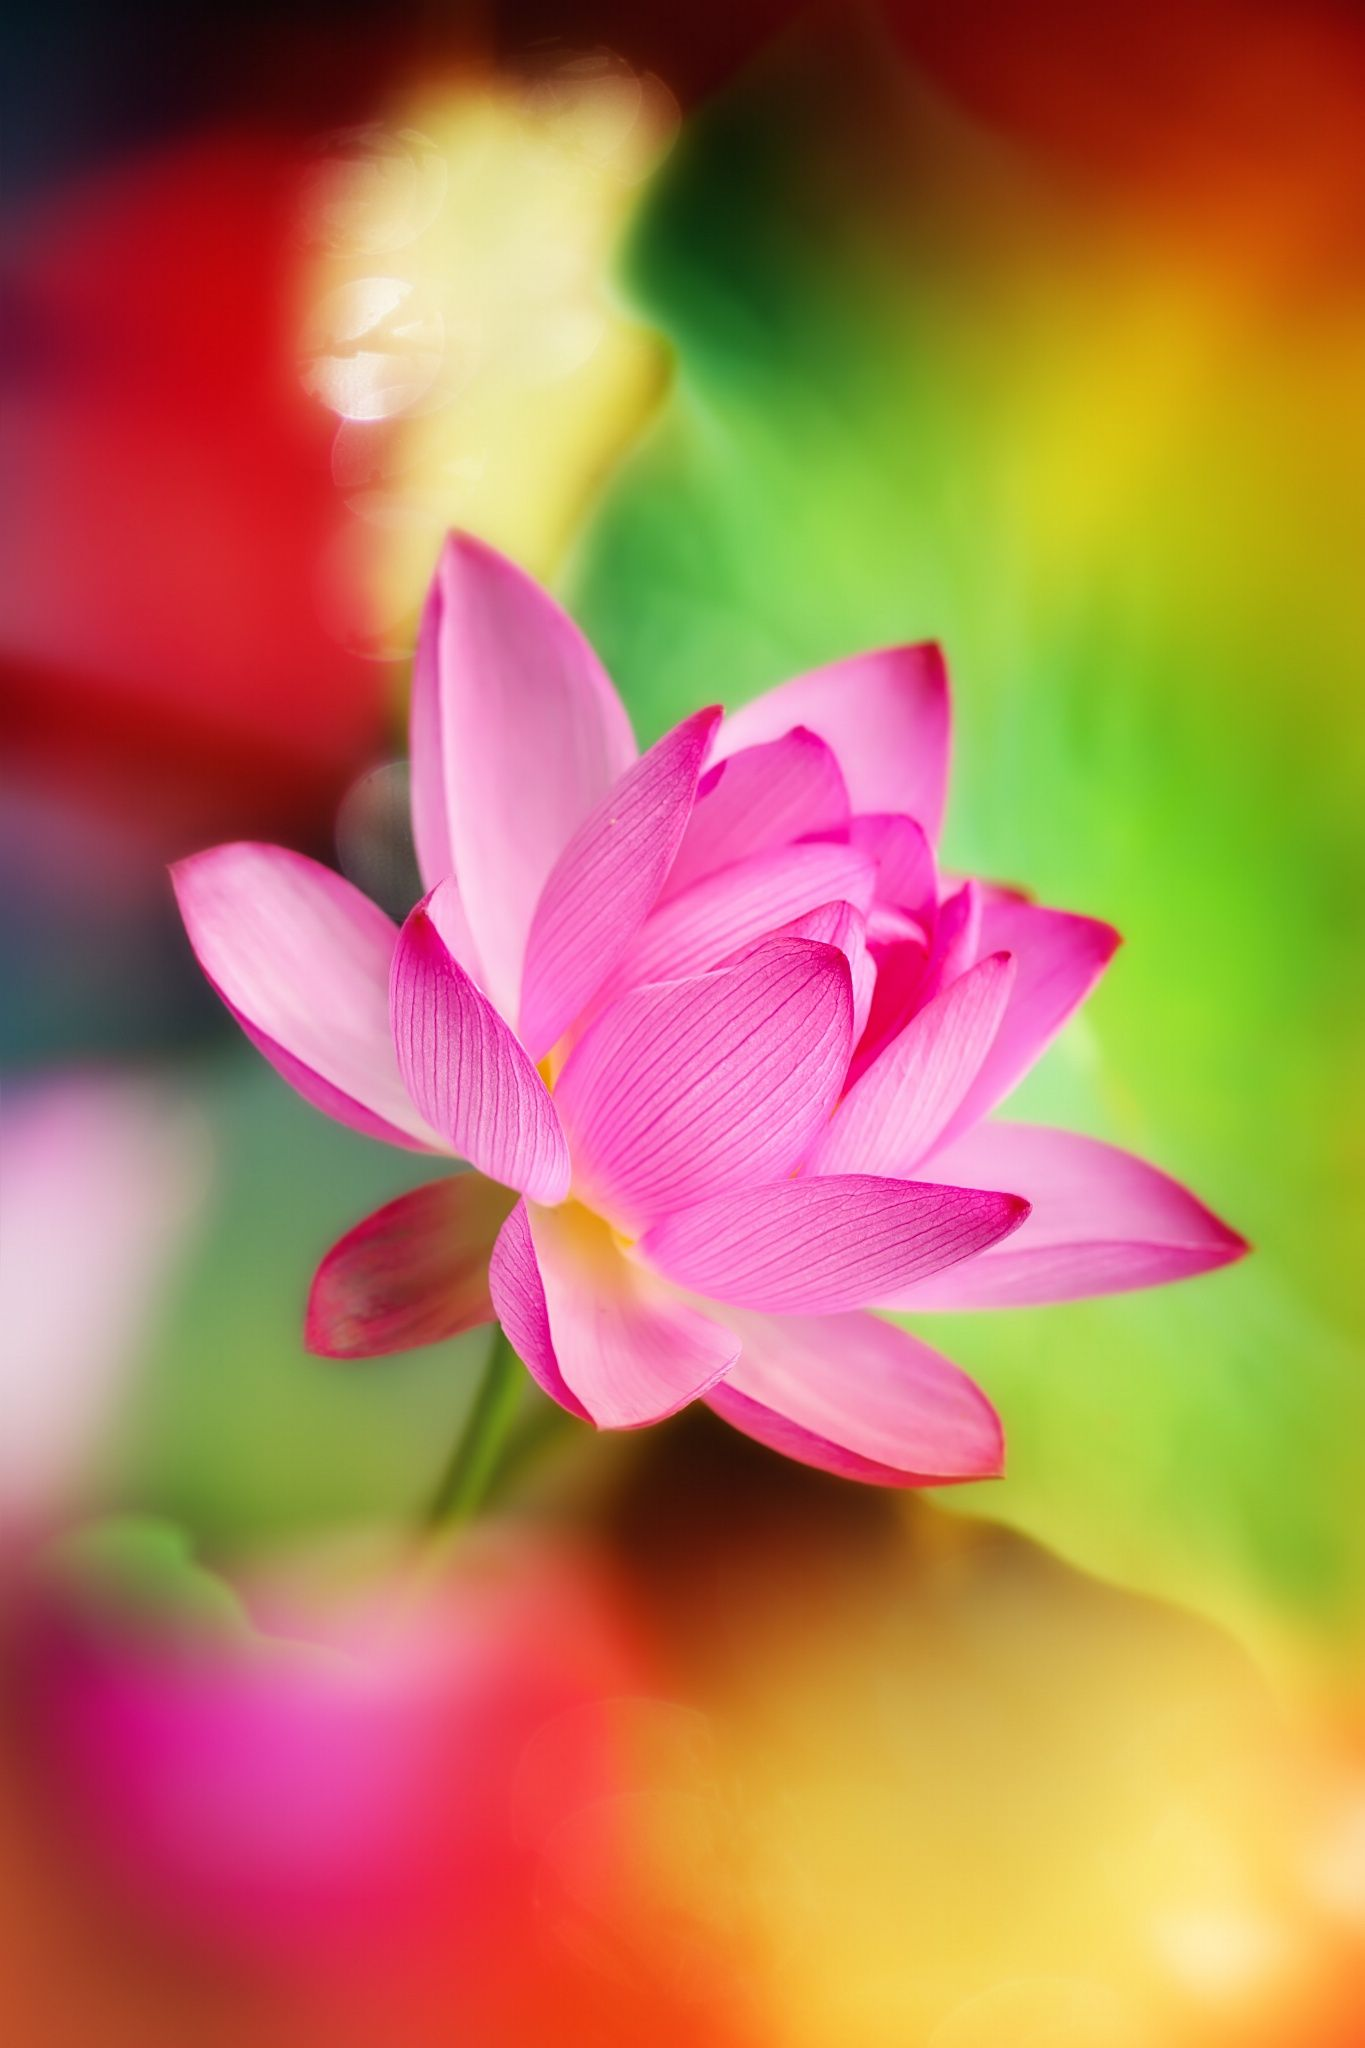 Lotus flower by fuyi chen on 500px flowers water lotus flower by fuyi chen on 500px mightylinksfo